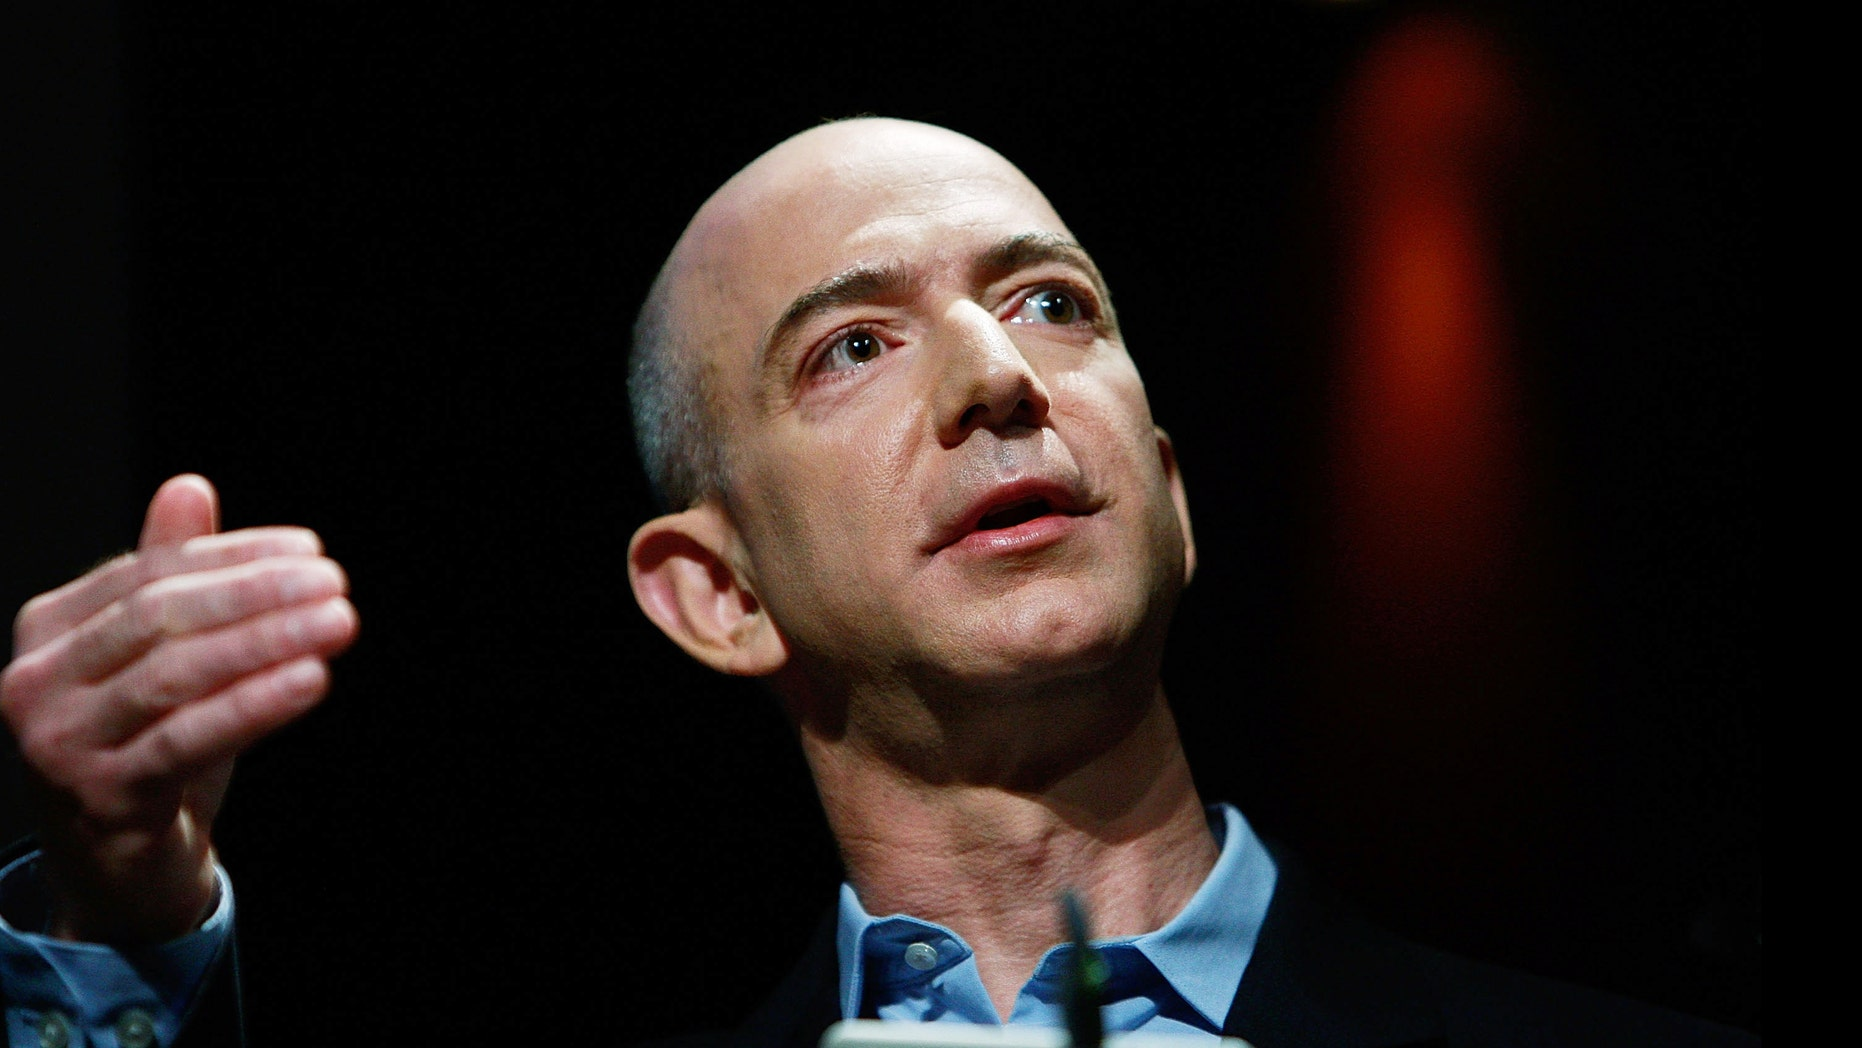 Amazon.com founder and CEO Jeffrey P. Bezos